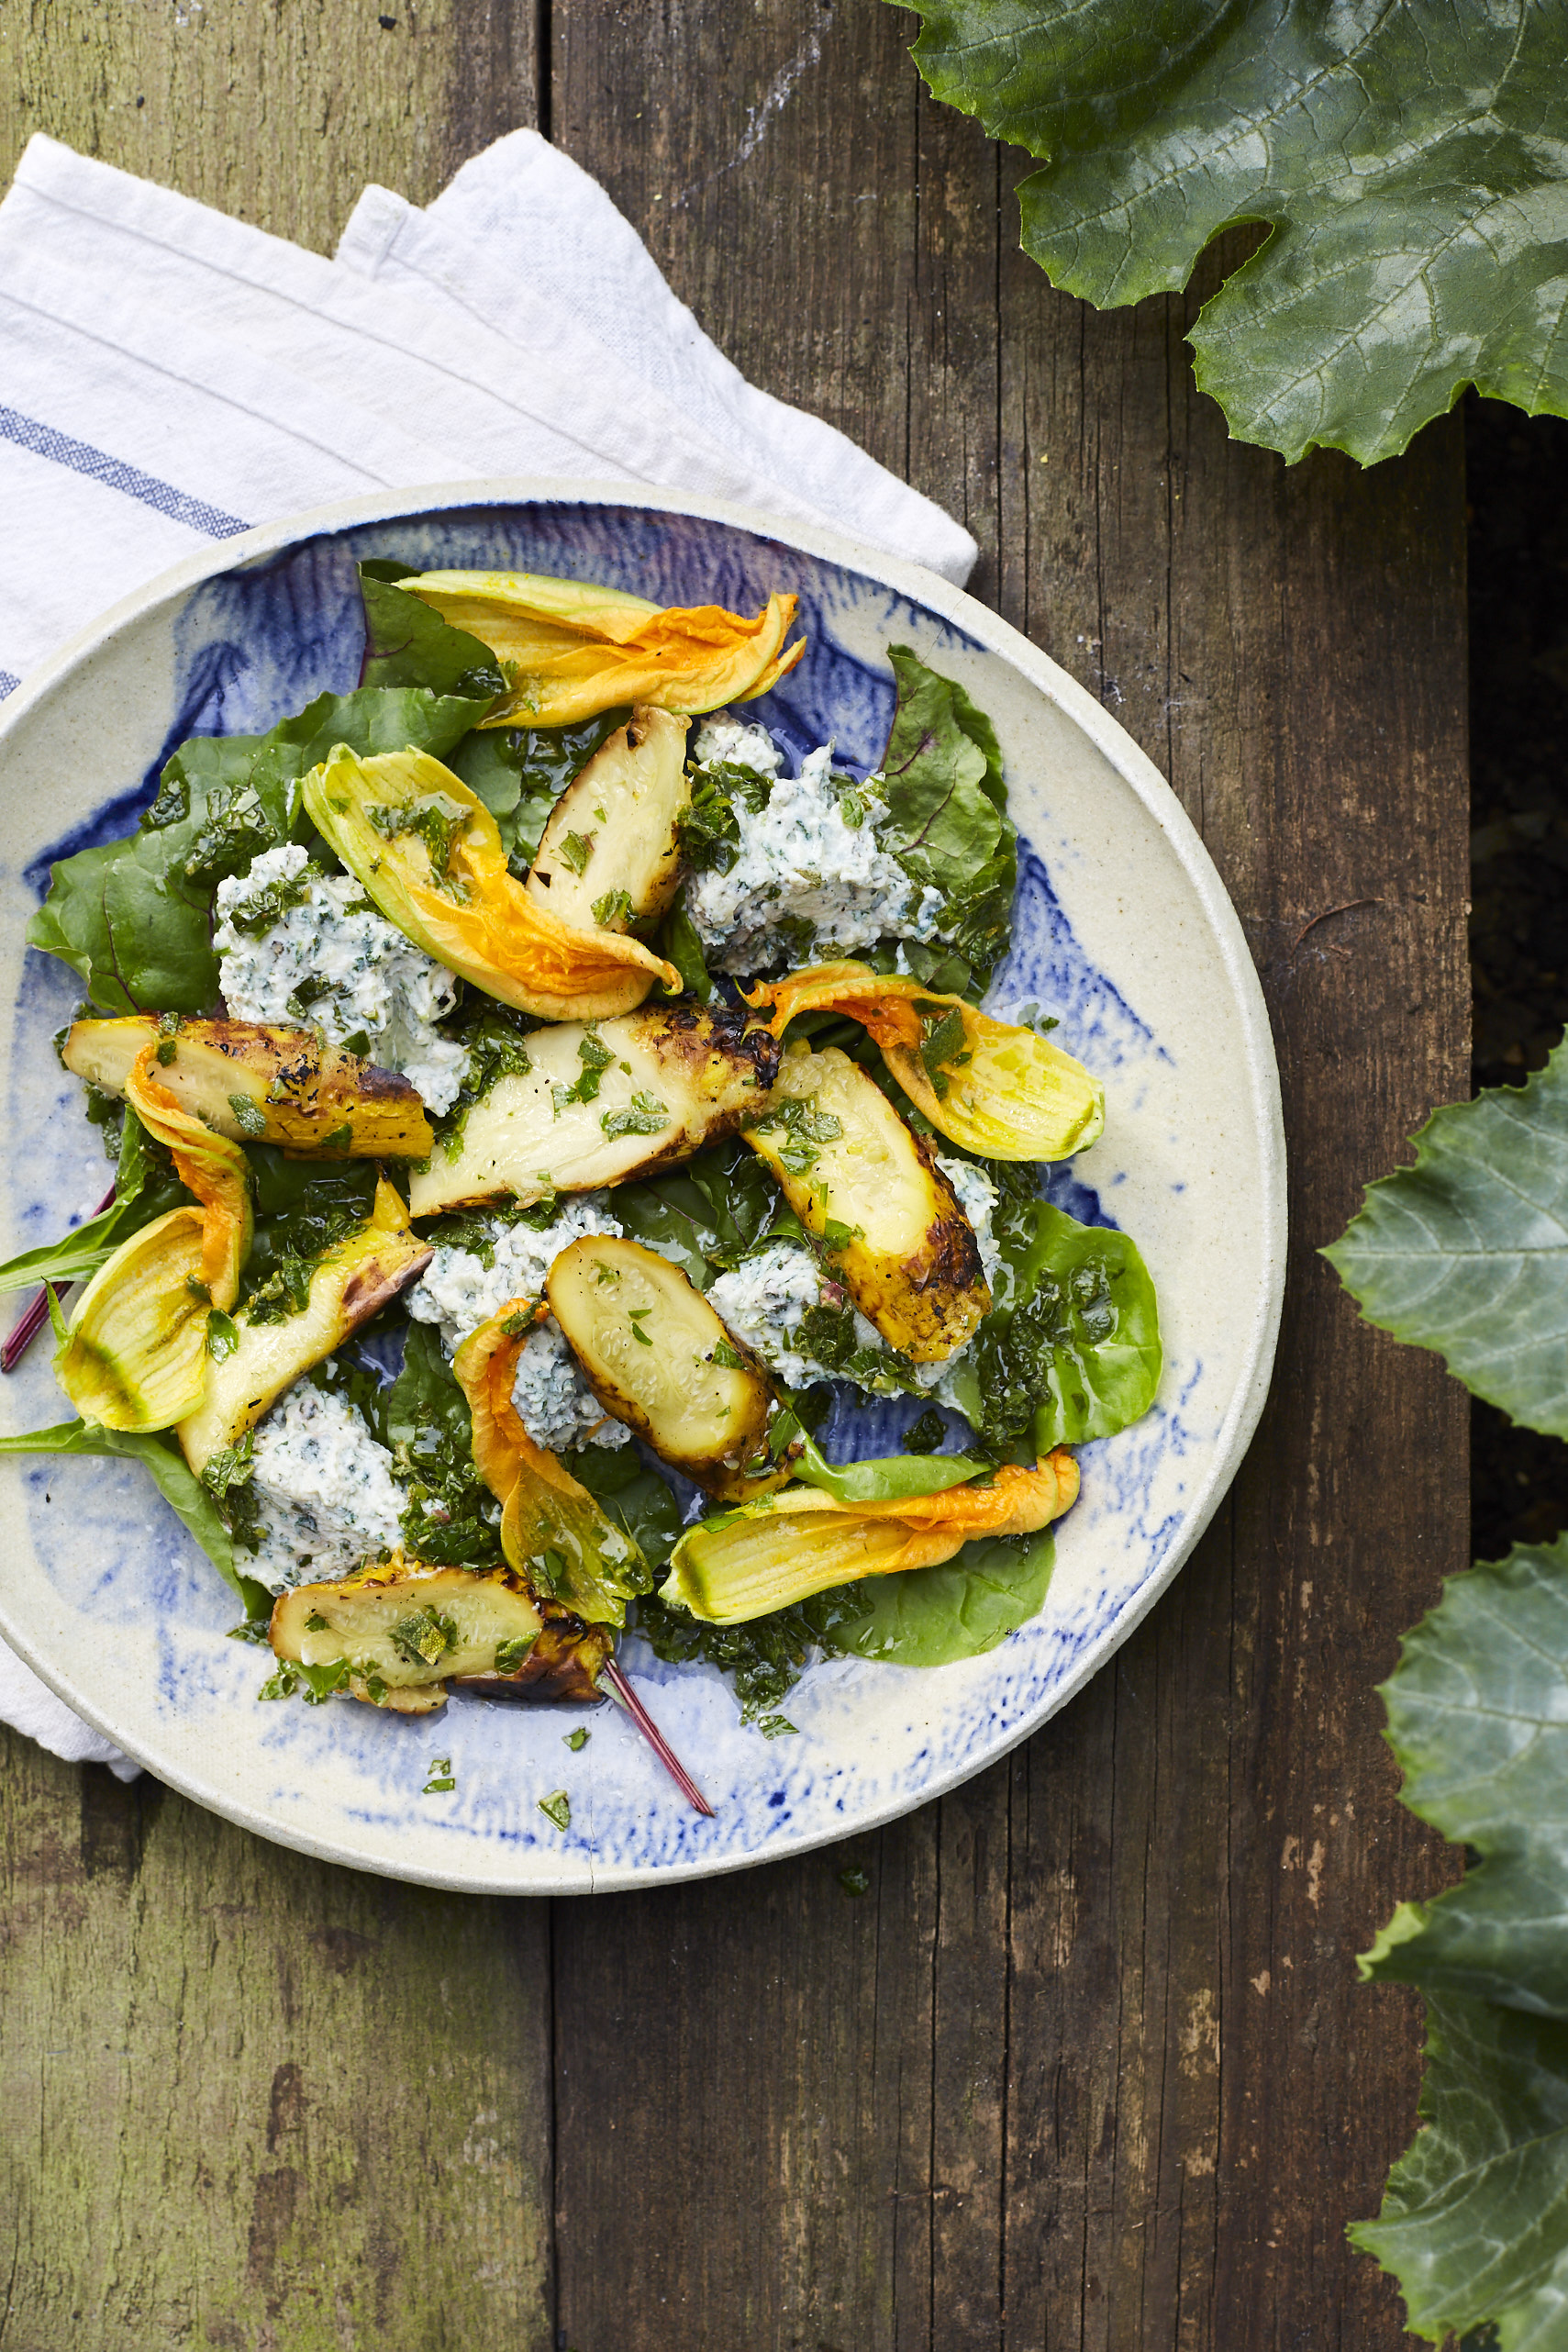 Courgette & Nettles